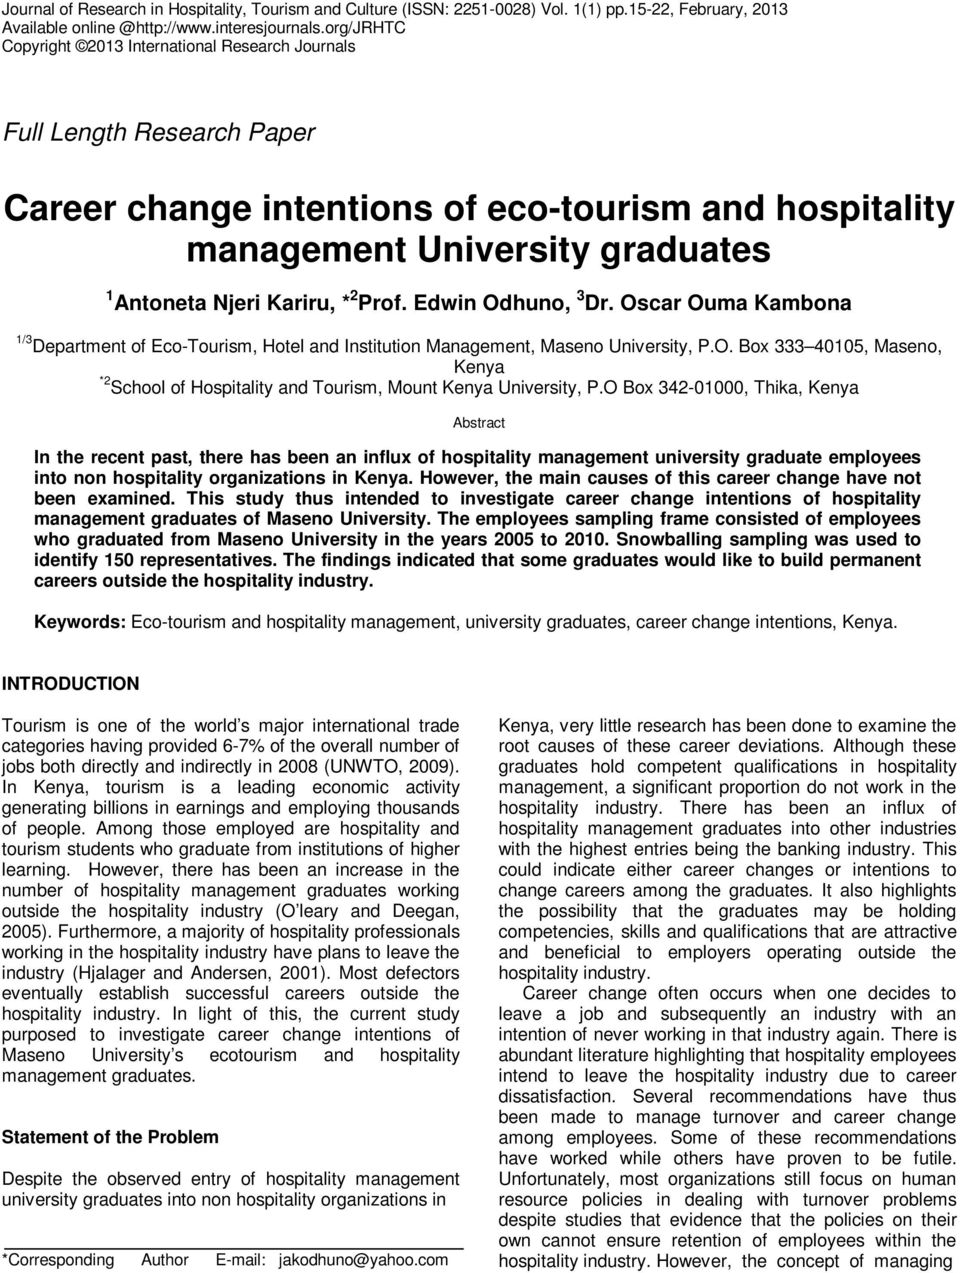 2 Prof. Edwin Odhuno, 3 Dr. Oscar Ouma Kambona 1/3 Department of Eco-Tourism, Hotel and Institution Management, Maseno University, P.O. Box 333 40105, Maseno, Kenya *2 School of Hospitality and Tourism, Mount Kenya University, P.